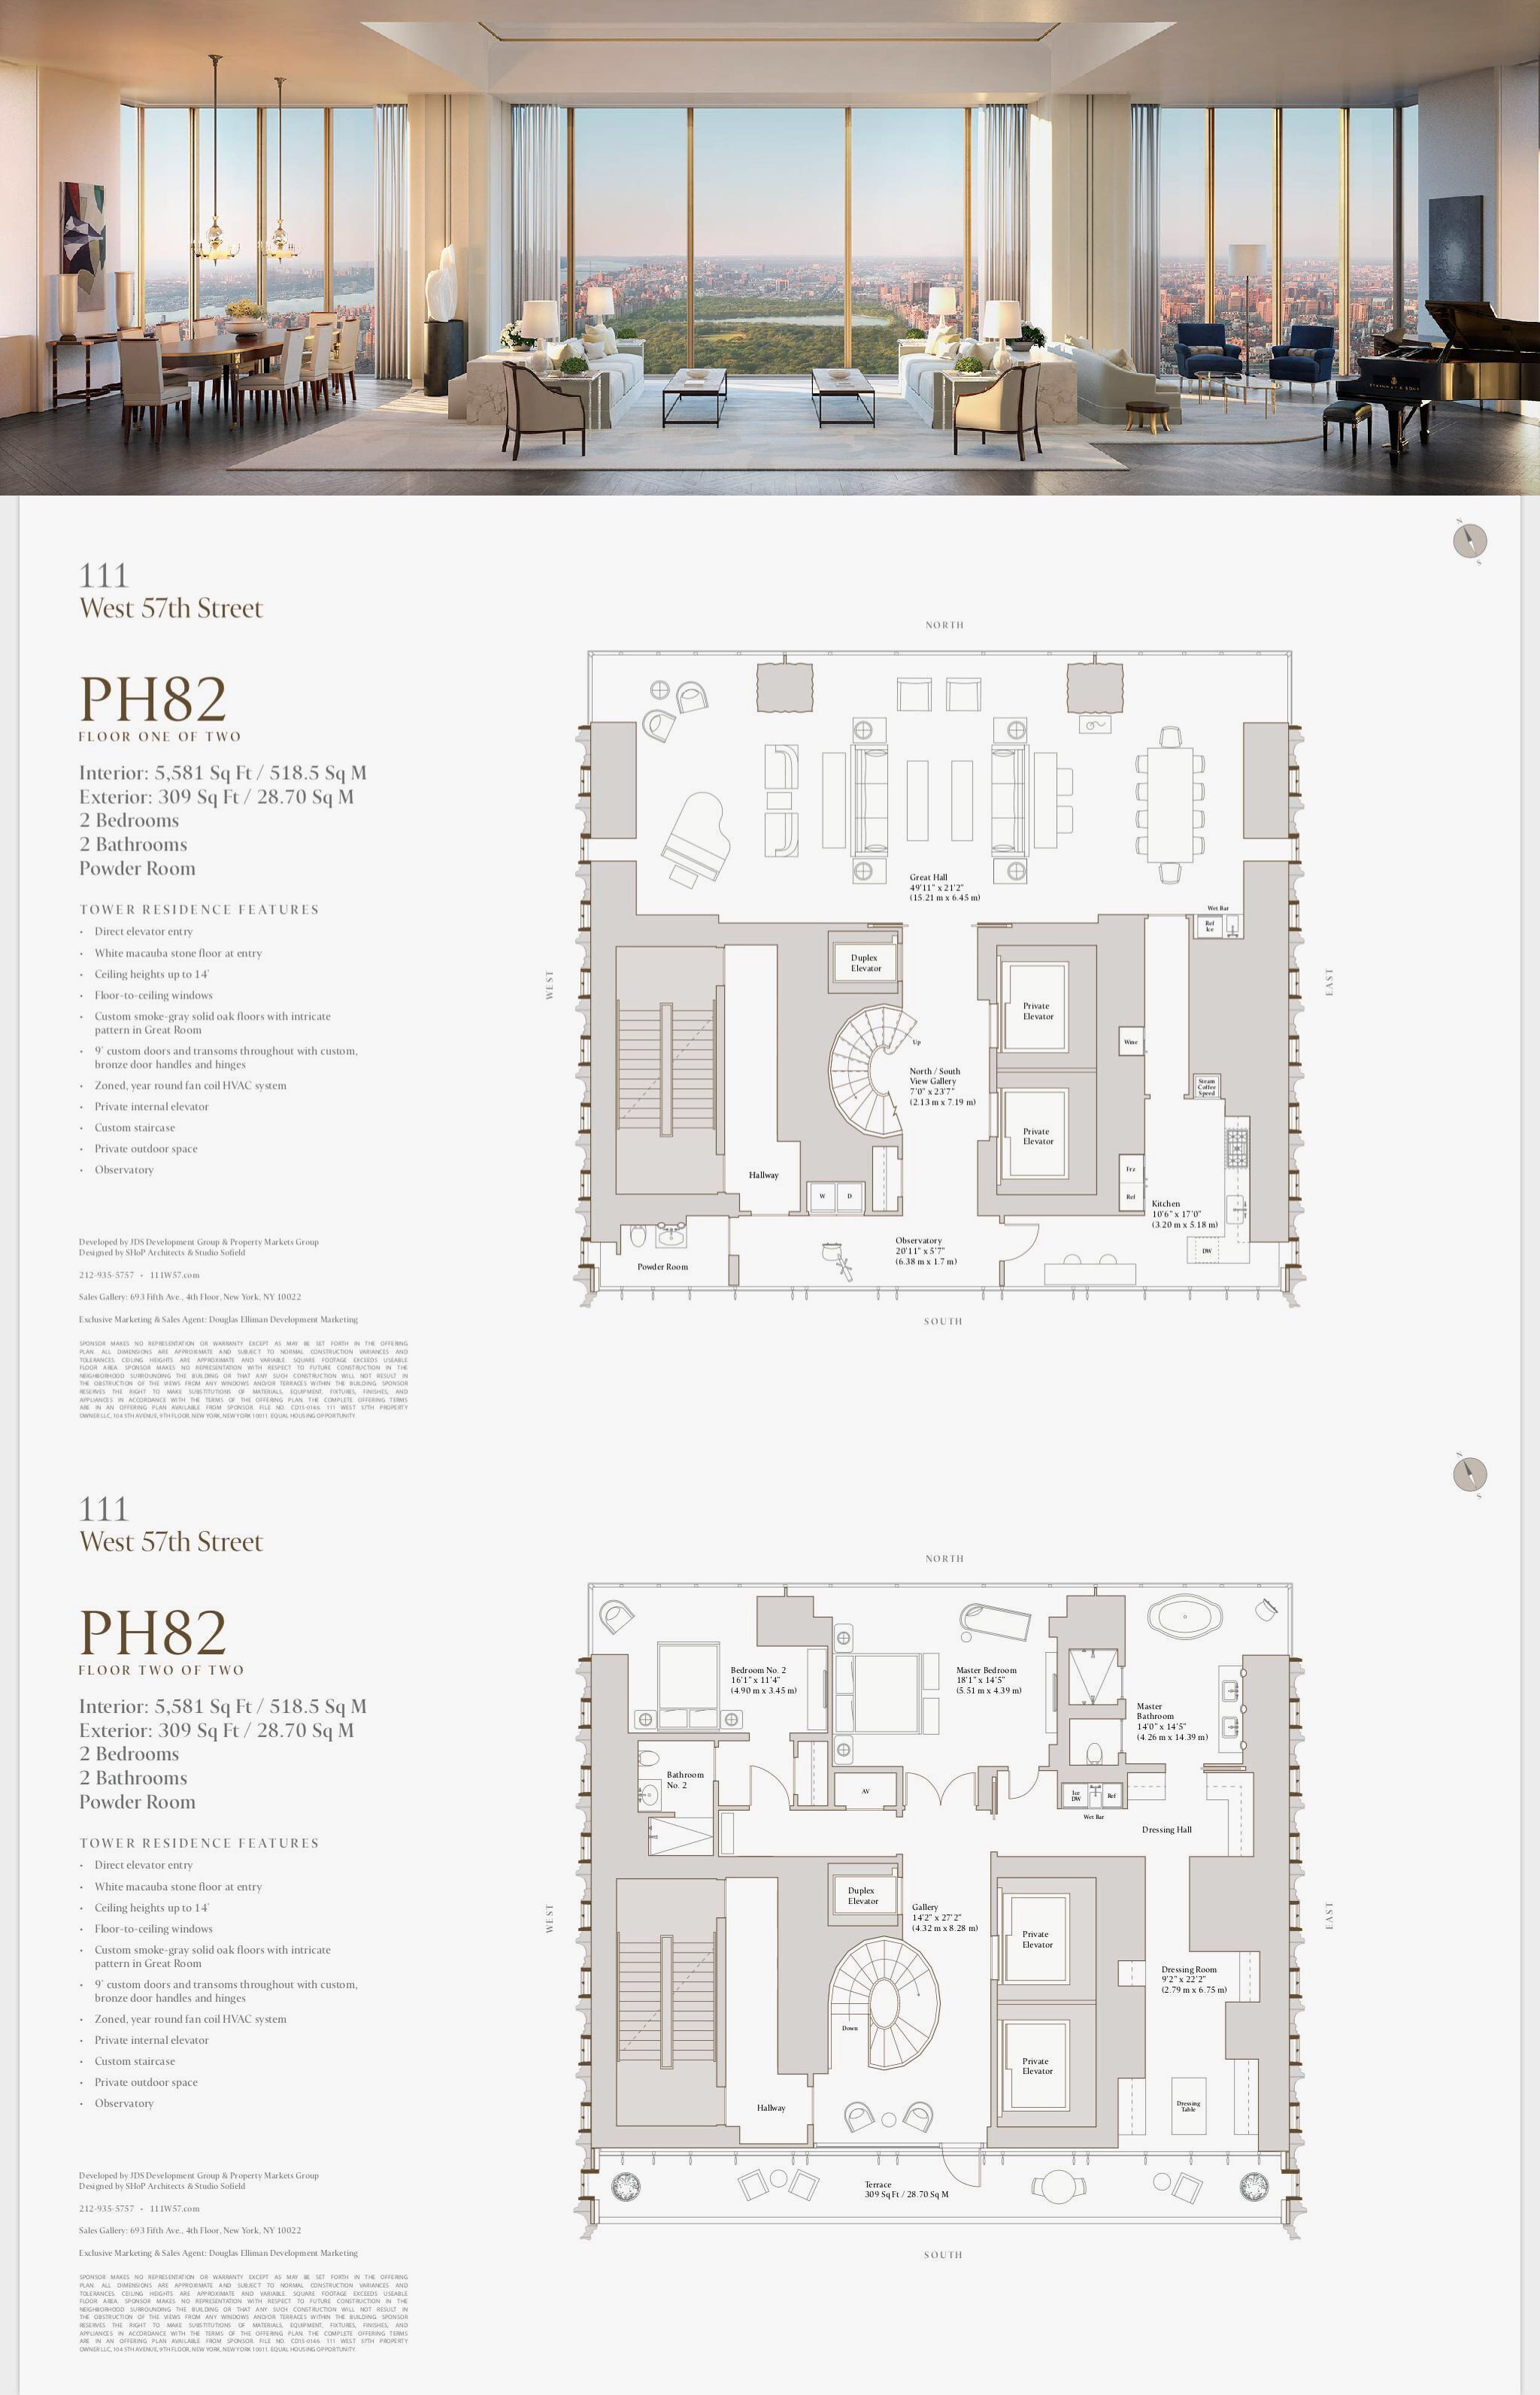 111 West 57th Street Ph 82 Ranch Style House Plans Modern House Plans Craftsman House Plans